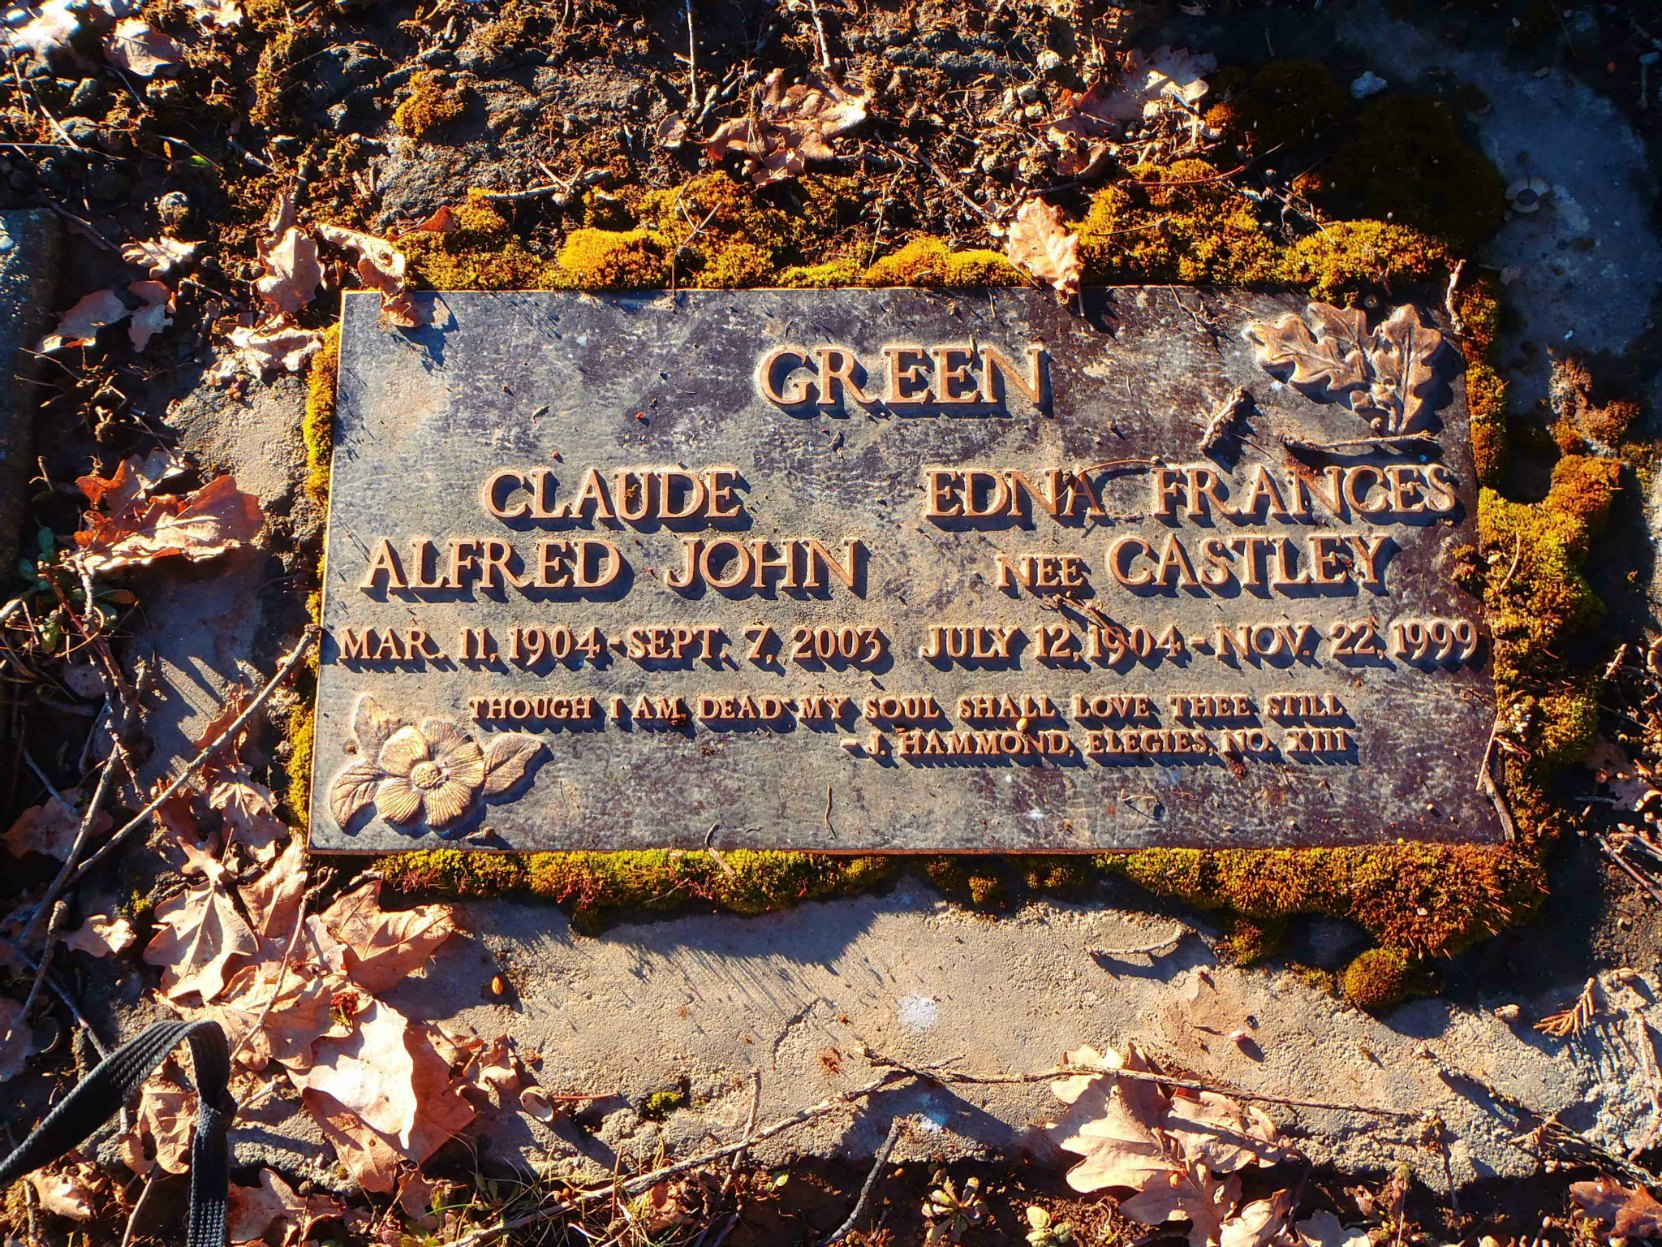 Grave marker for Claude Green and Edna Green, St. Mary's Somenos cemetery, Somenos Road, North Cowichan